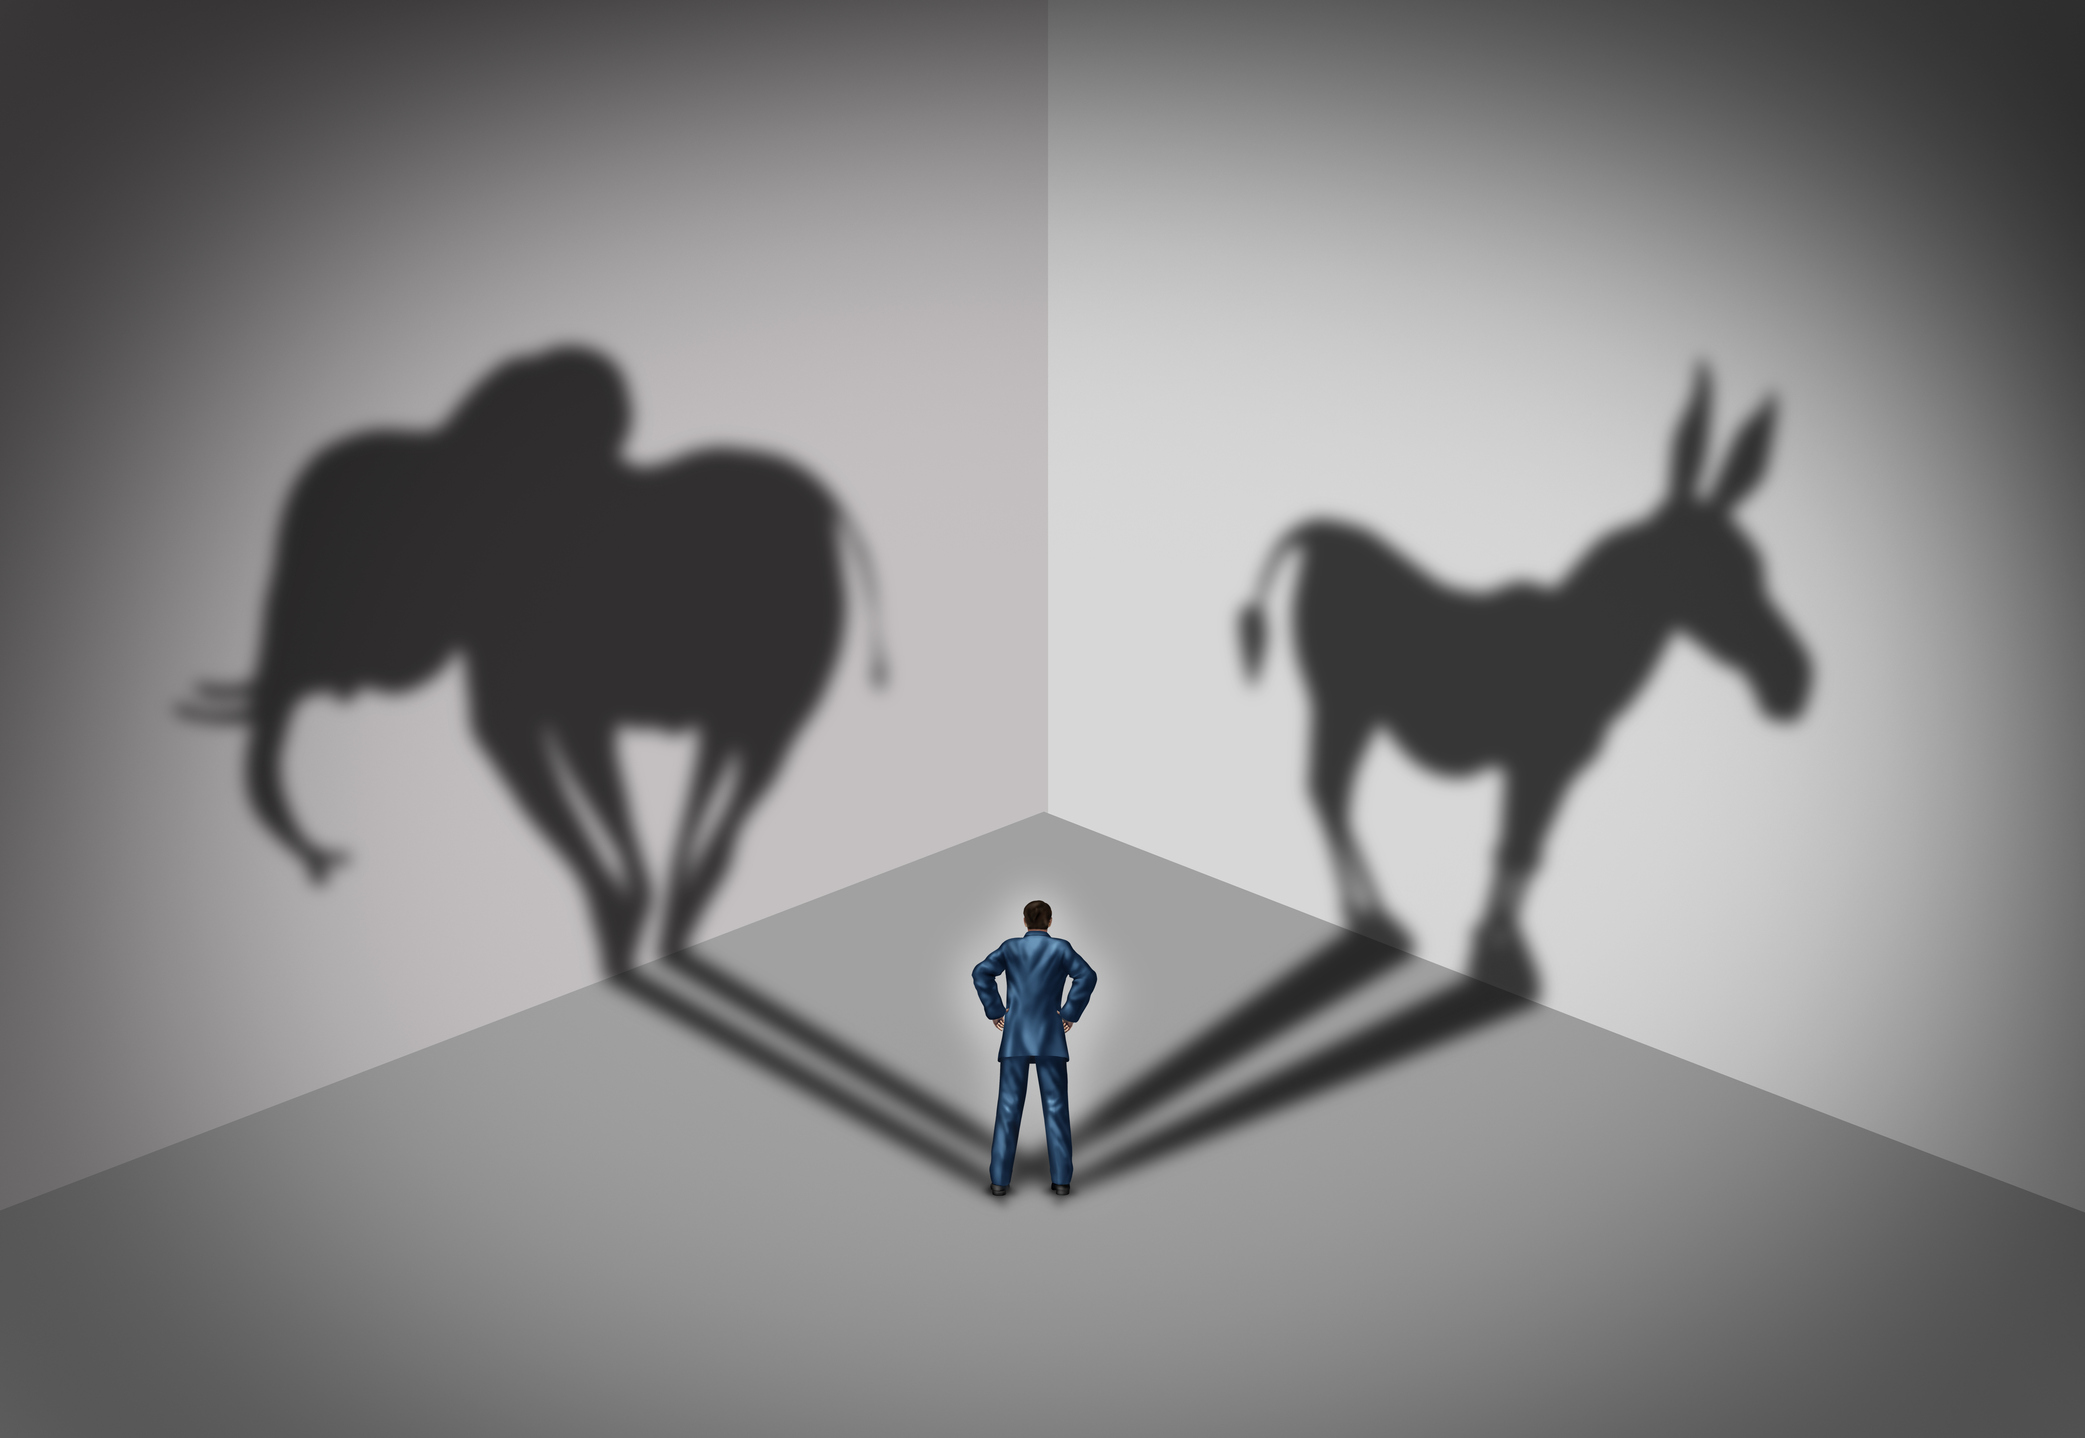 Republican and democrat voter concept as a symbol of an American election political identity campaign choice as two United States political parties shaped as an elephant and donkey in a 3D illustration style. Image credit: wildpixel